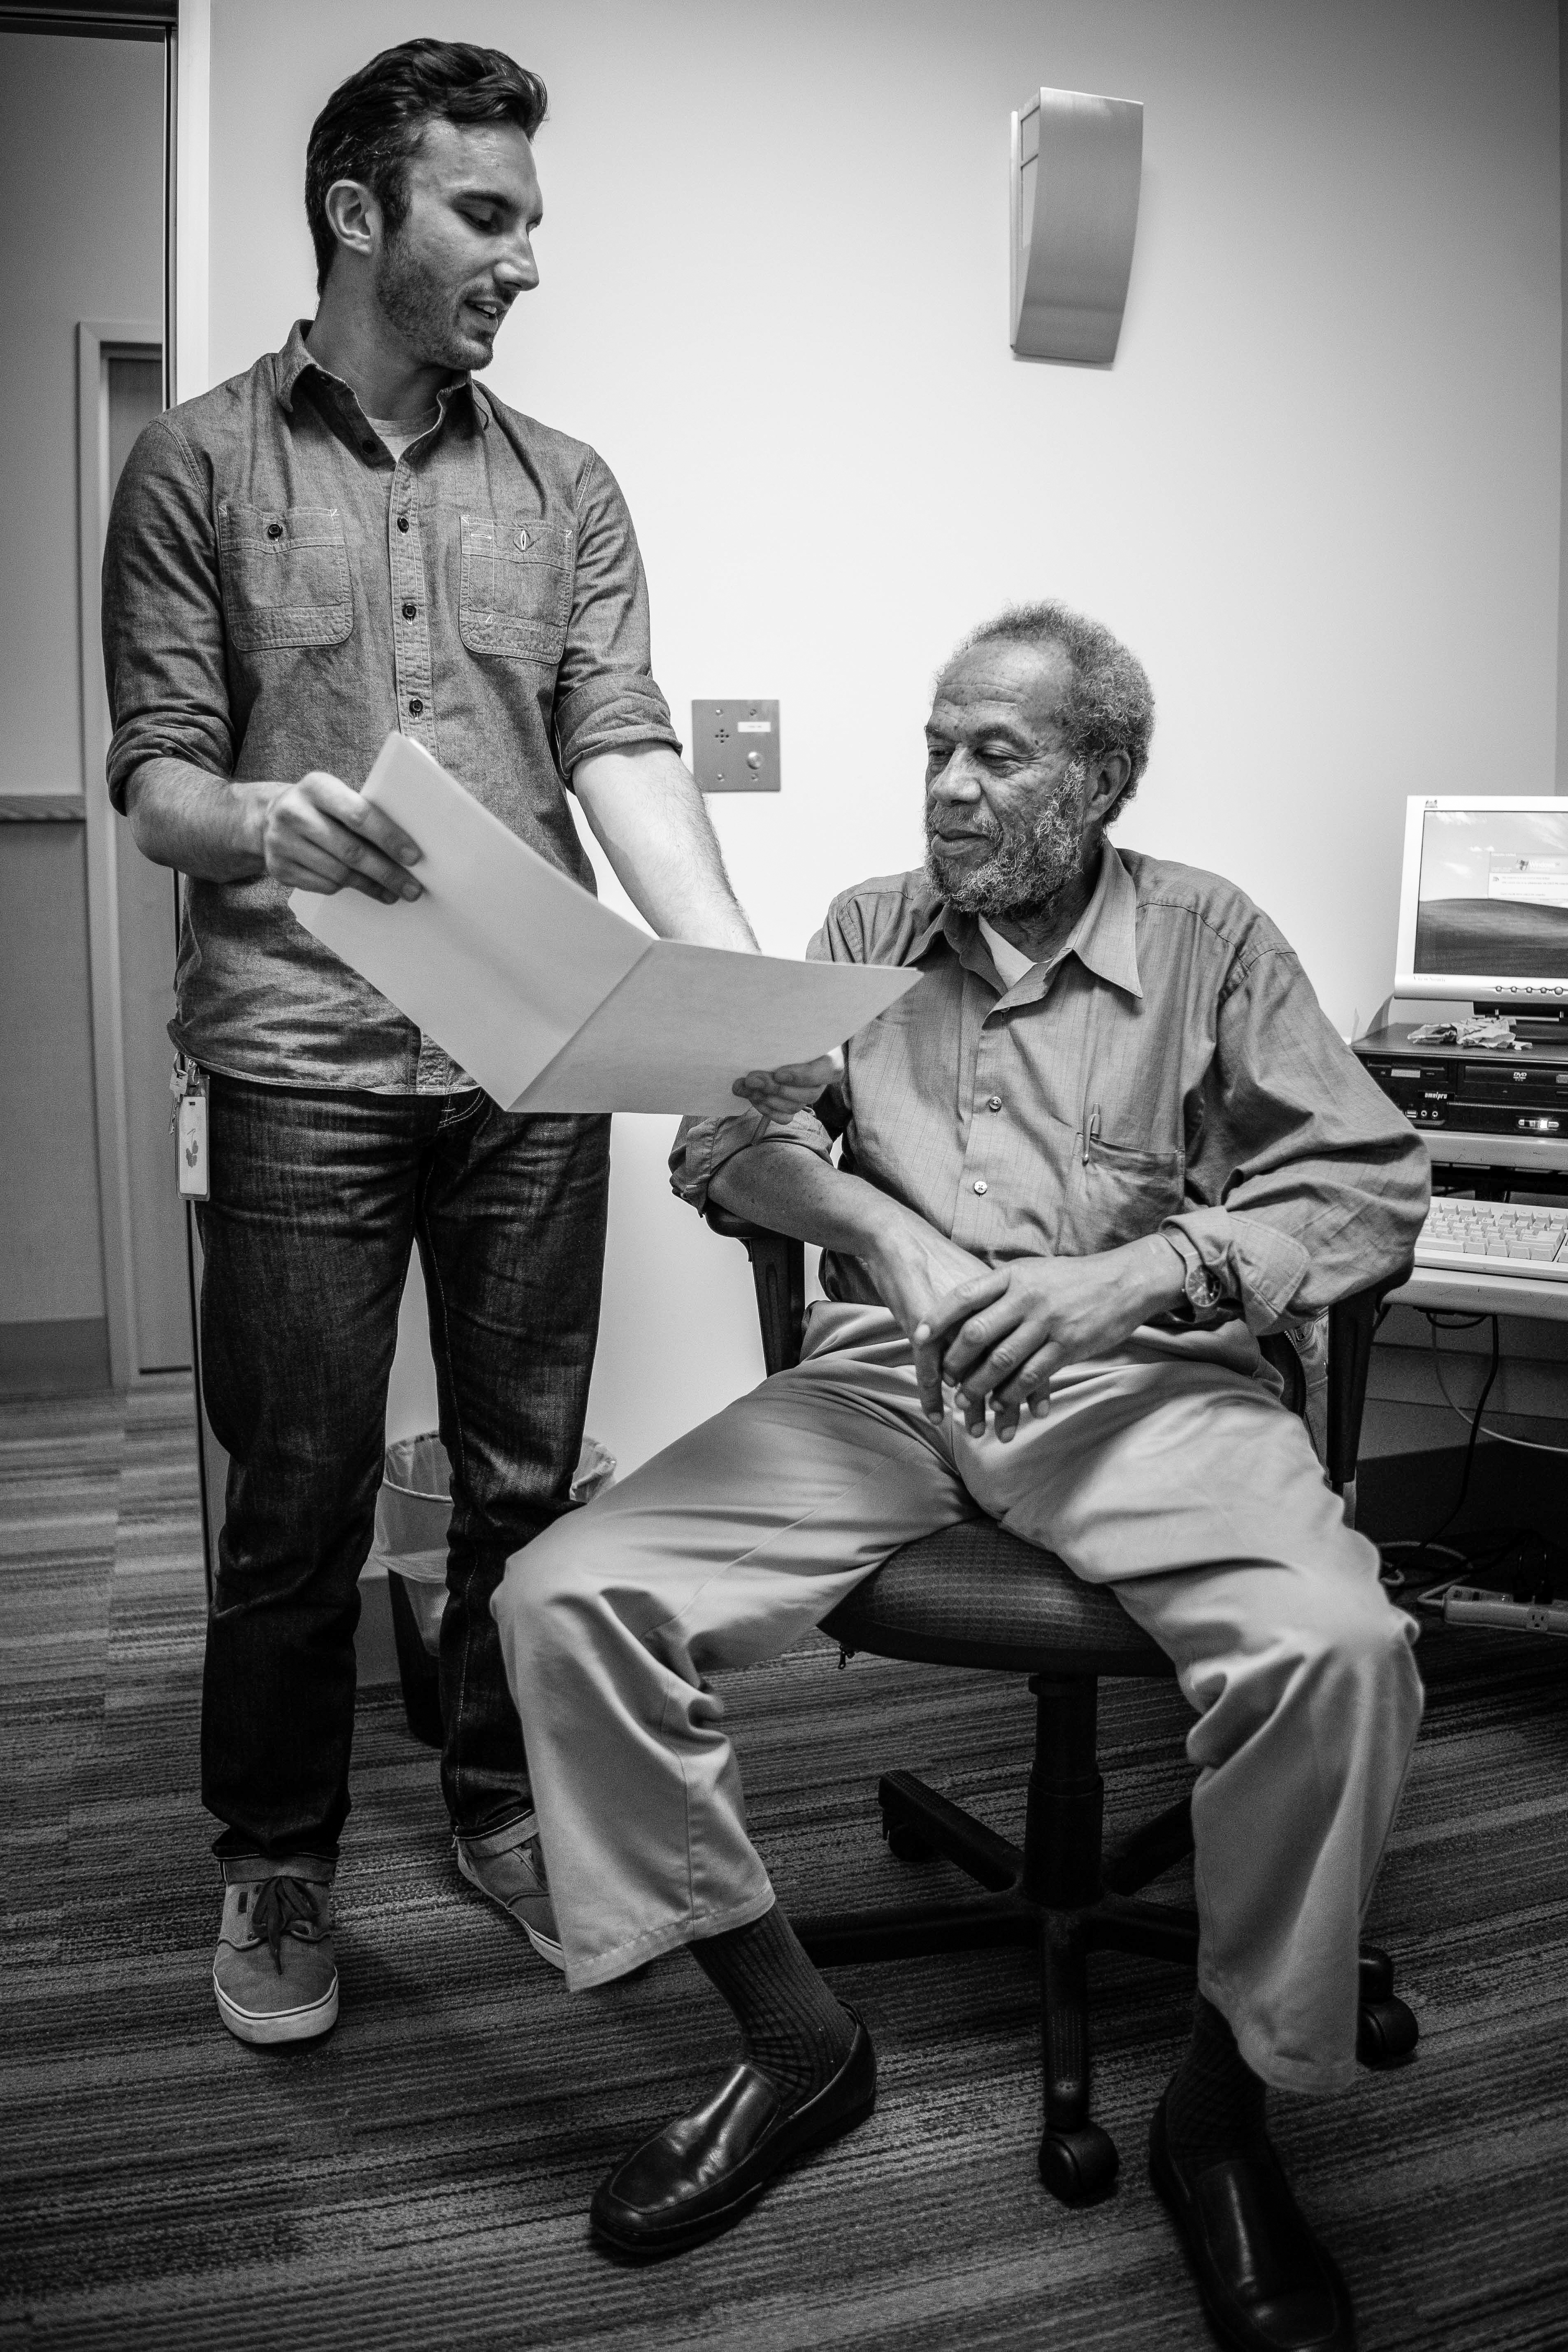 Christopher Brodie and Sam Edwards both work in City College's Health Center. Sam Edwards is a licensed therapist and helps with a variety of group counseling services on campus. March 16, 2016. (Photo By Amanda Aceves/Special to The Guardsman)